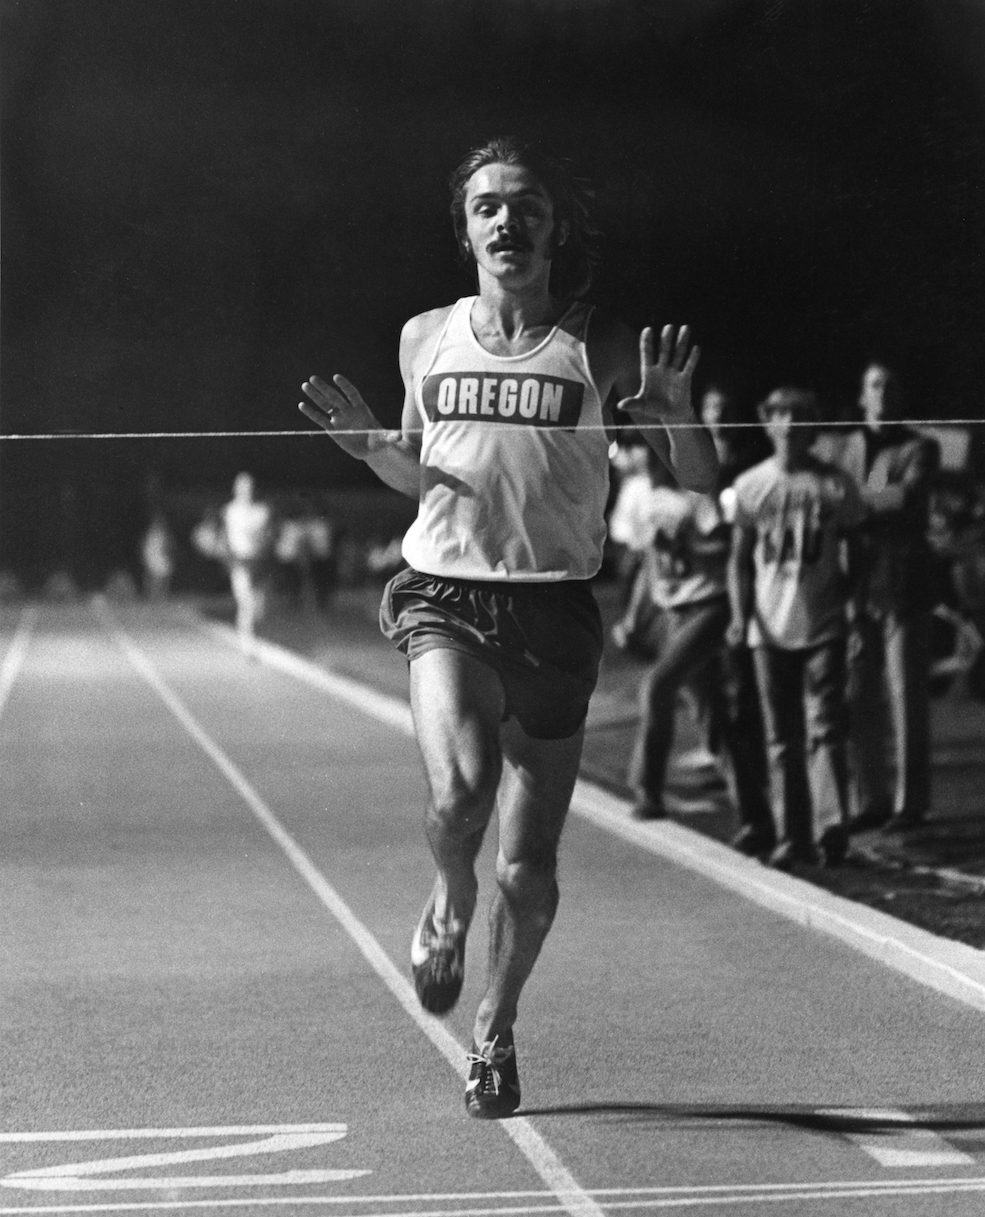 Prefontaine crossing a race finish line.